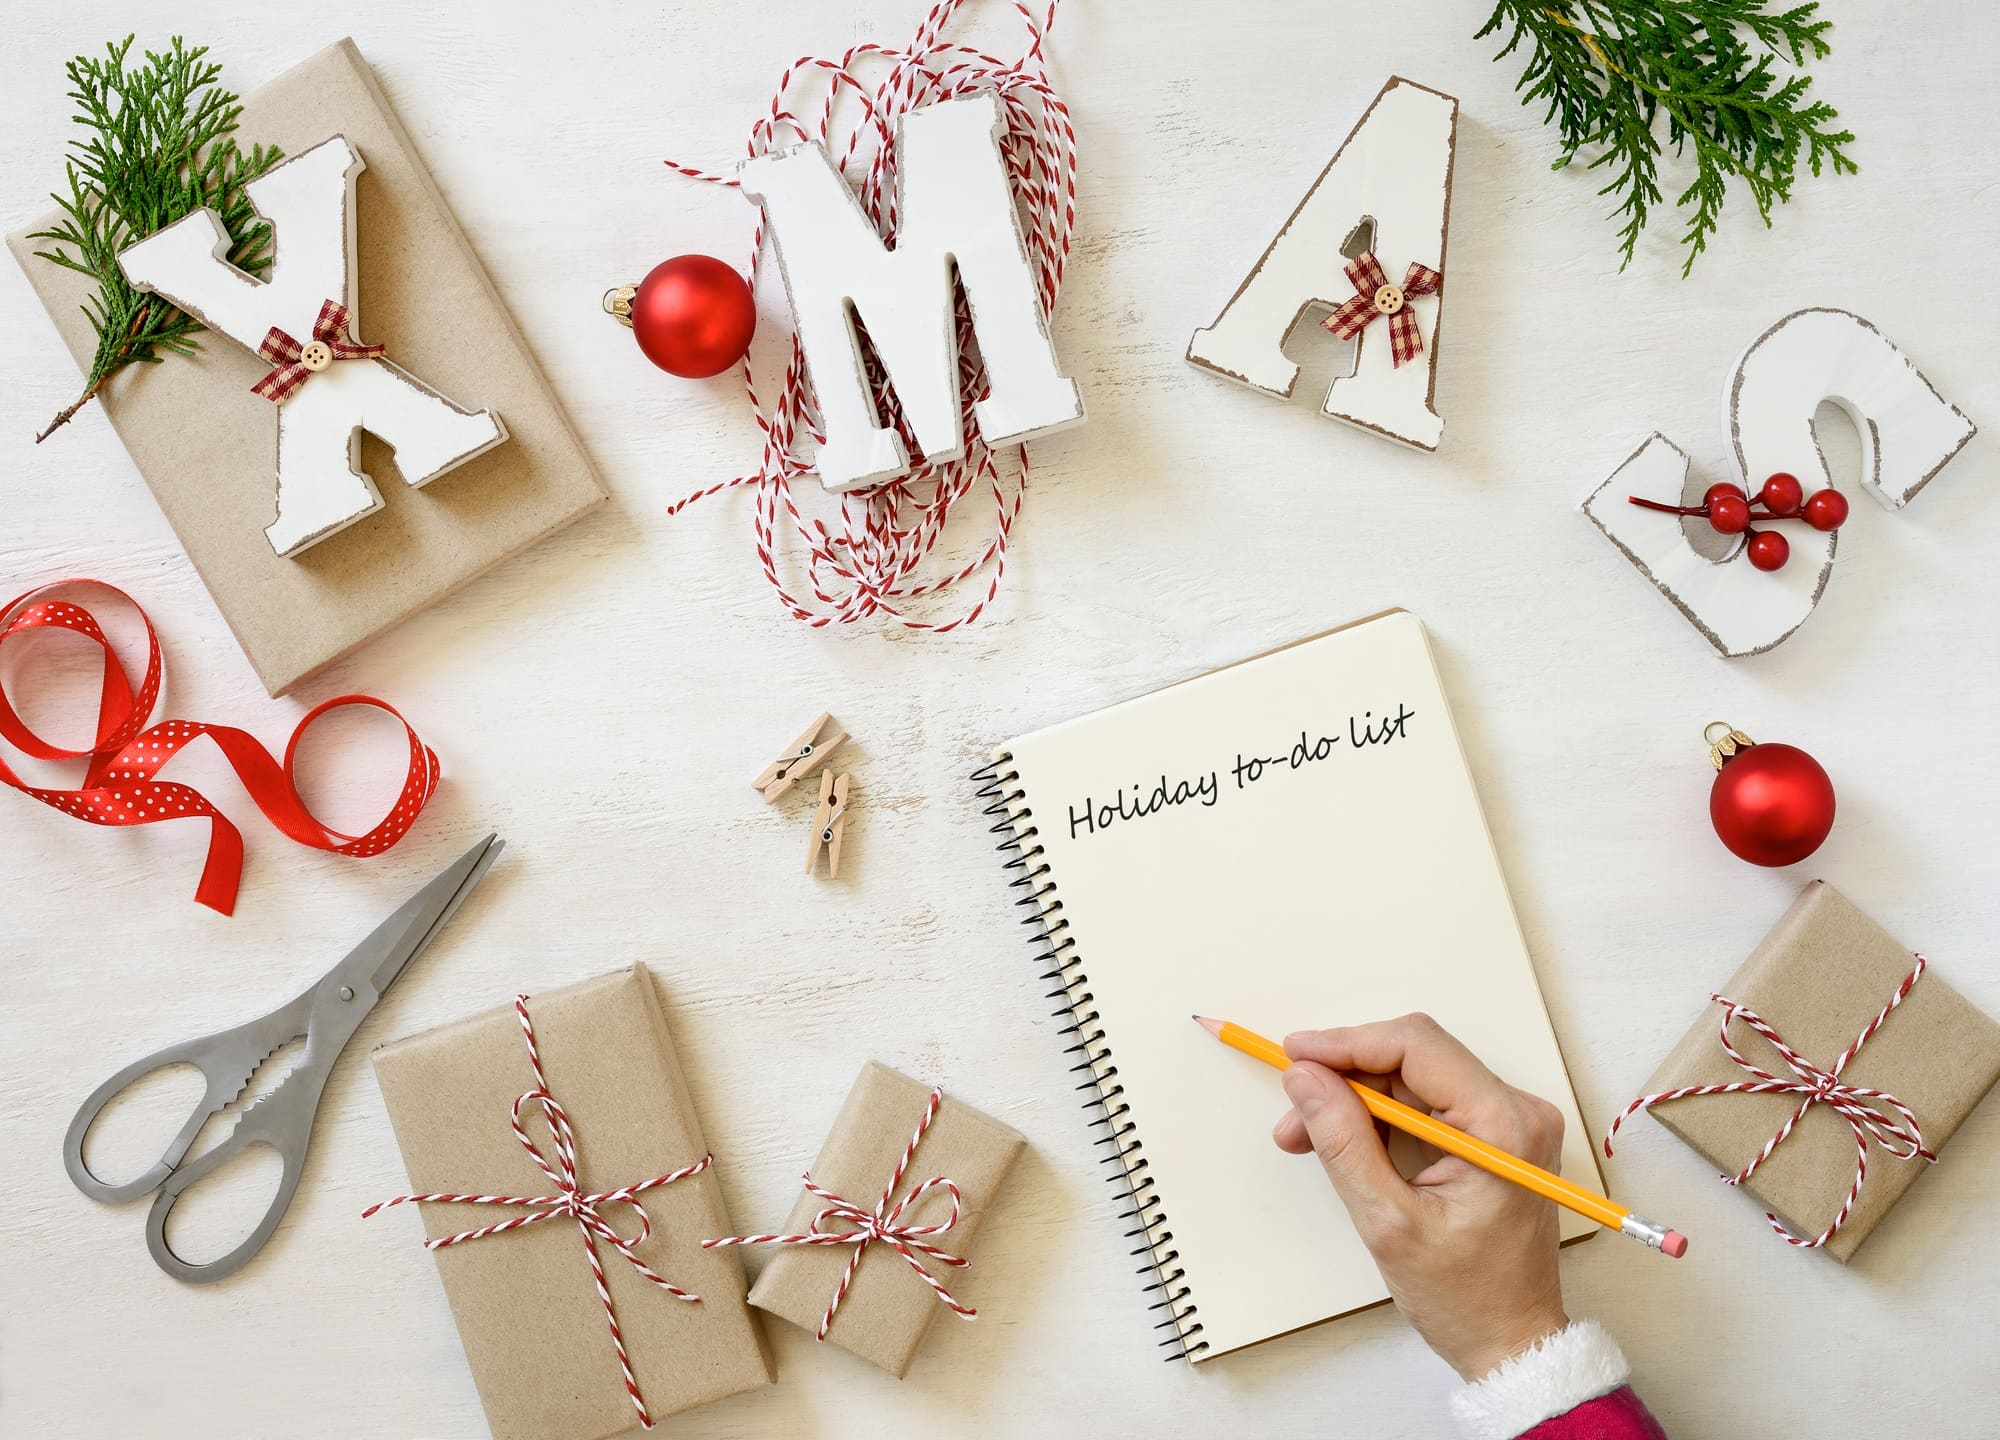 The Holiday Notebook helps with holiday season sanity